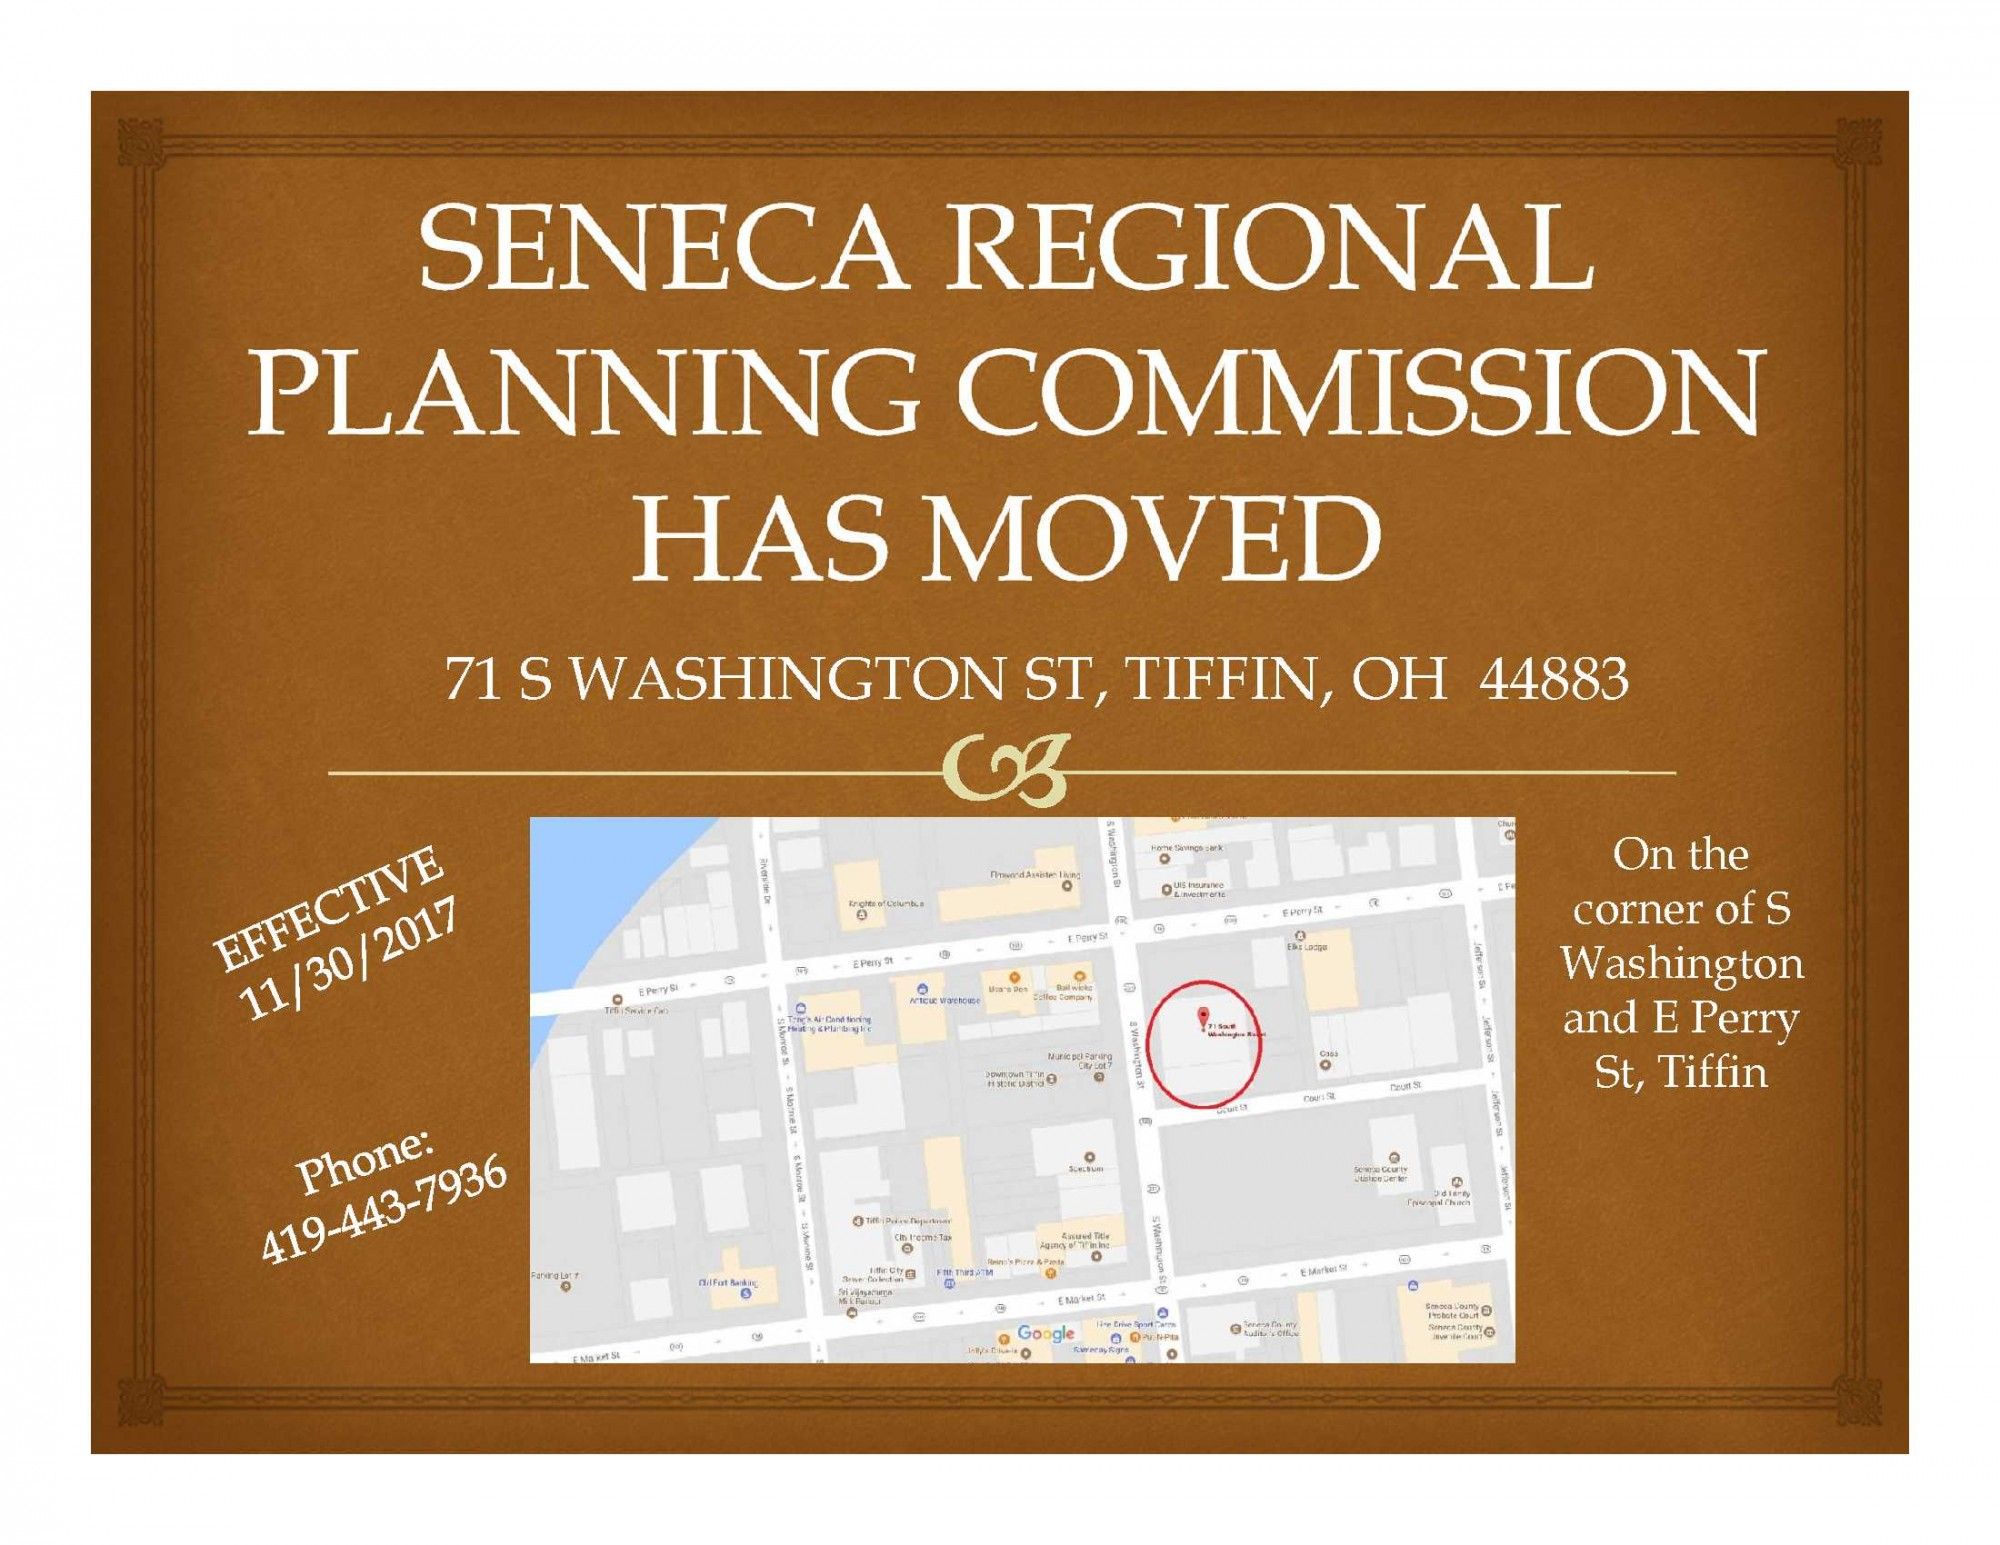 We have moved to 71 S Washington Street